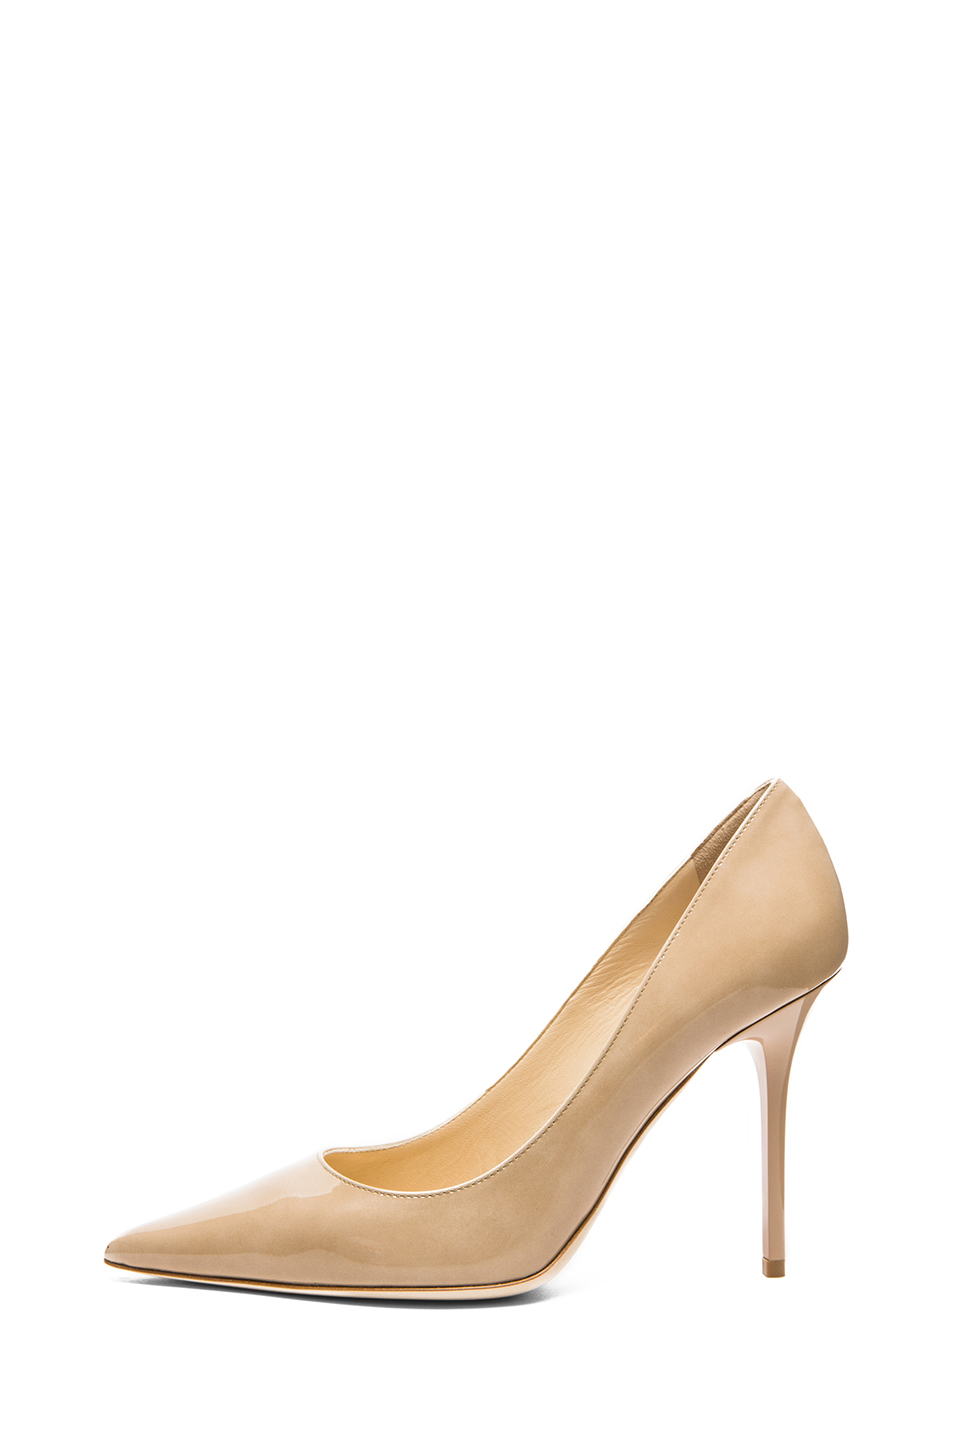 Jimmy Choo|Abel Patent Leather Pump in Nude